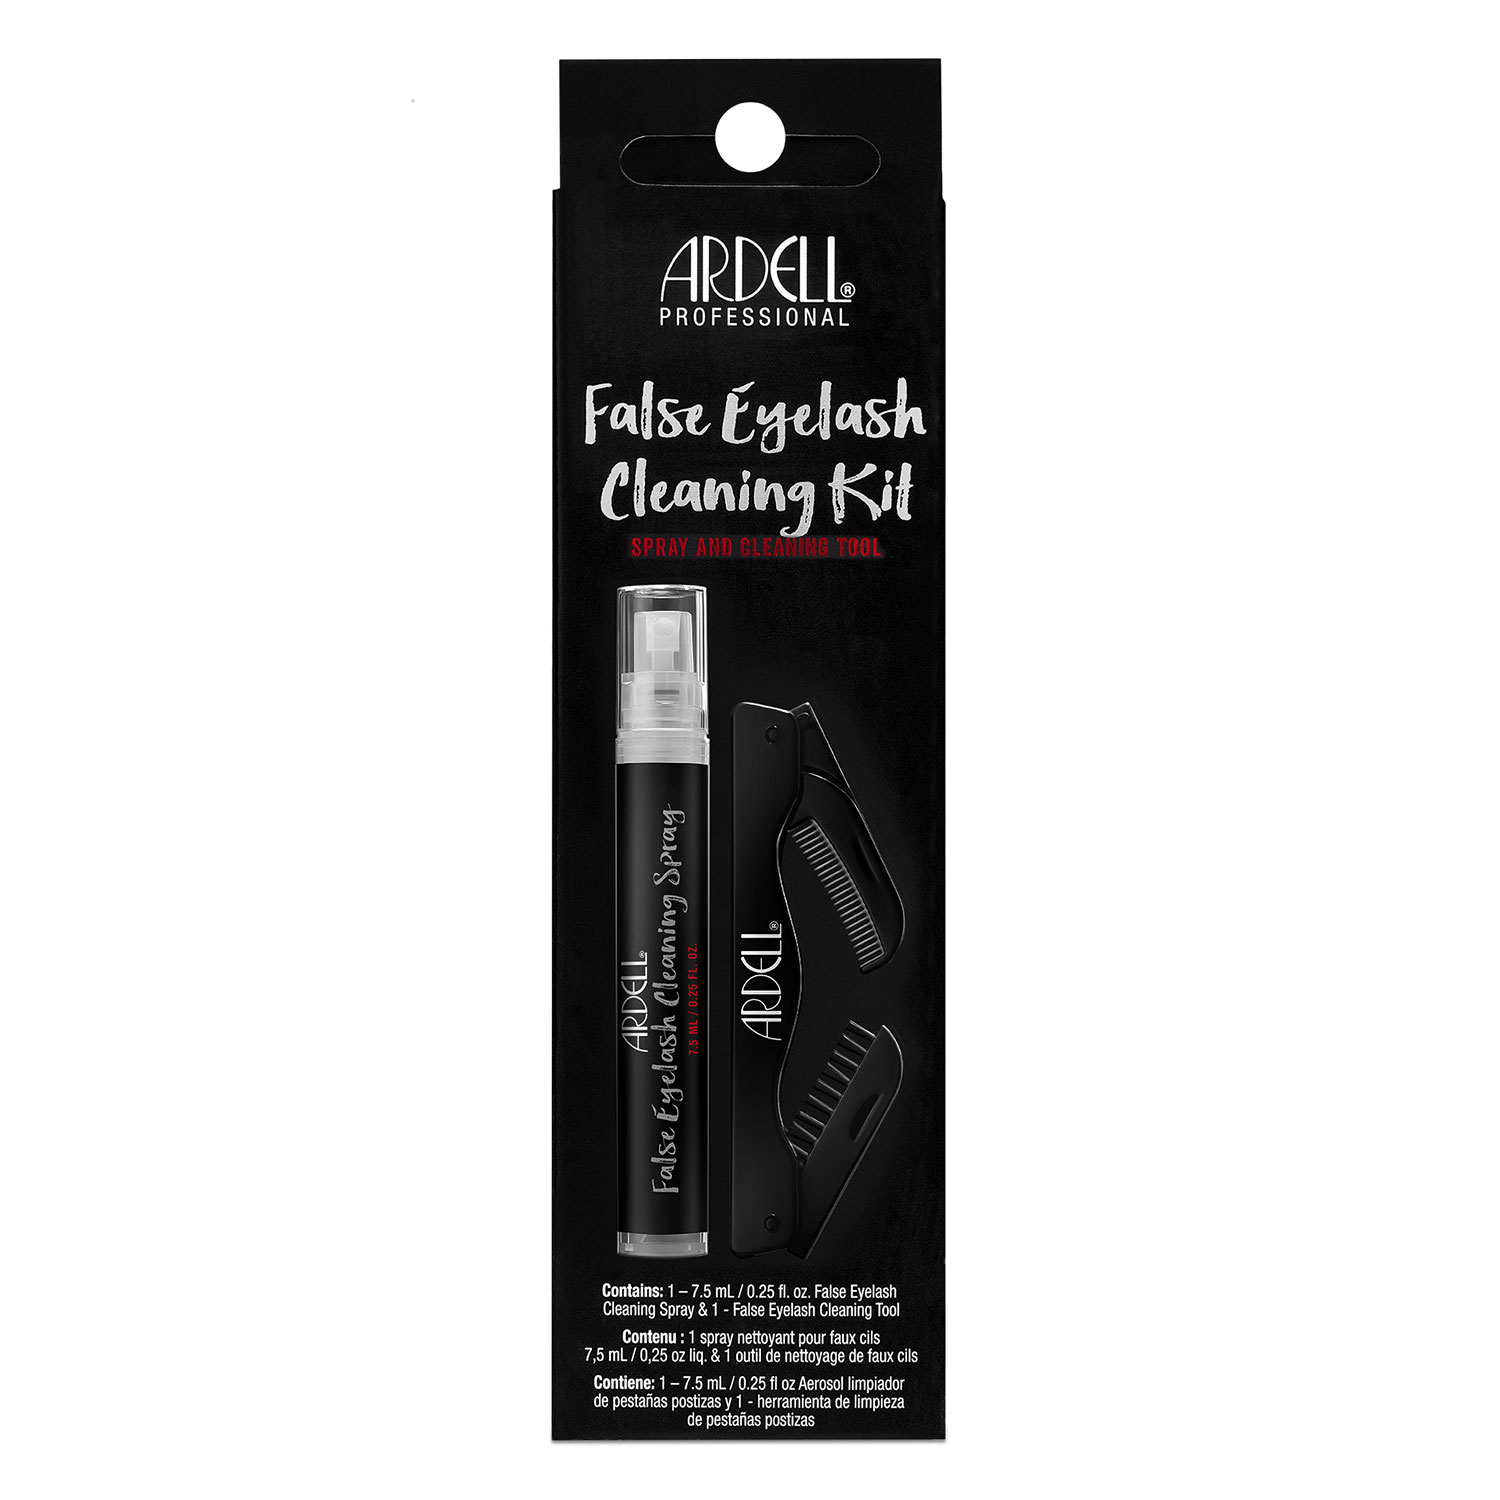 Ardell Tools - Ardell False Eyelash Cleaning Kit